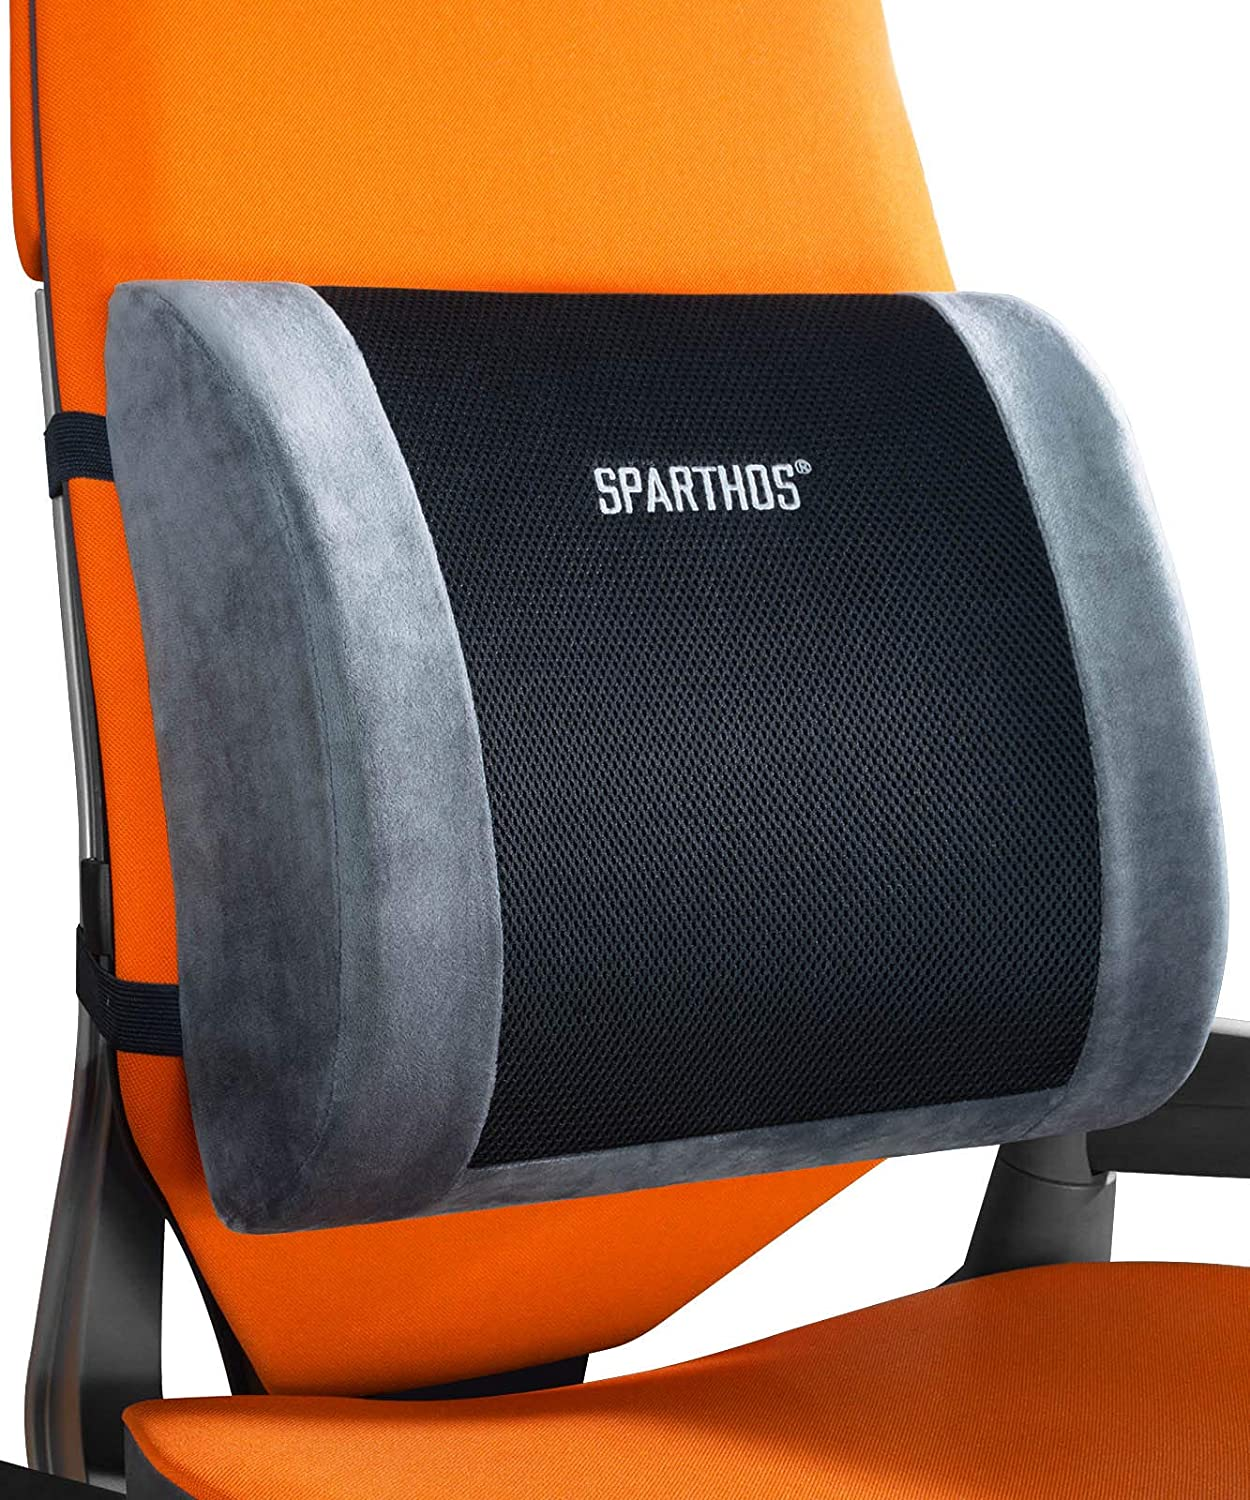 Sparthos Lumbar Support Tucson Mall Pillow - Lower Back Pain Offi for Relief Finally resale start